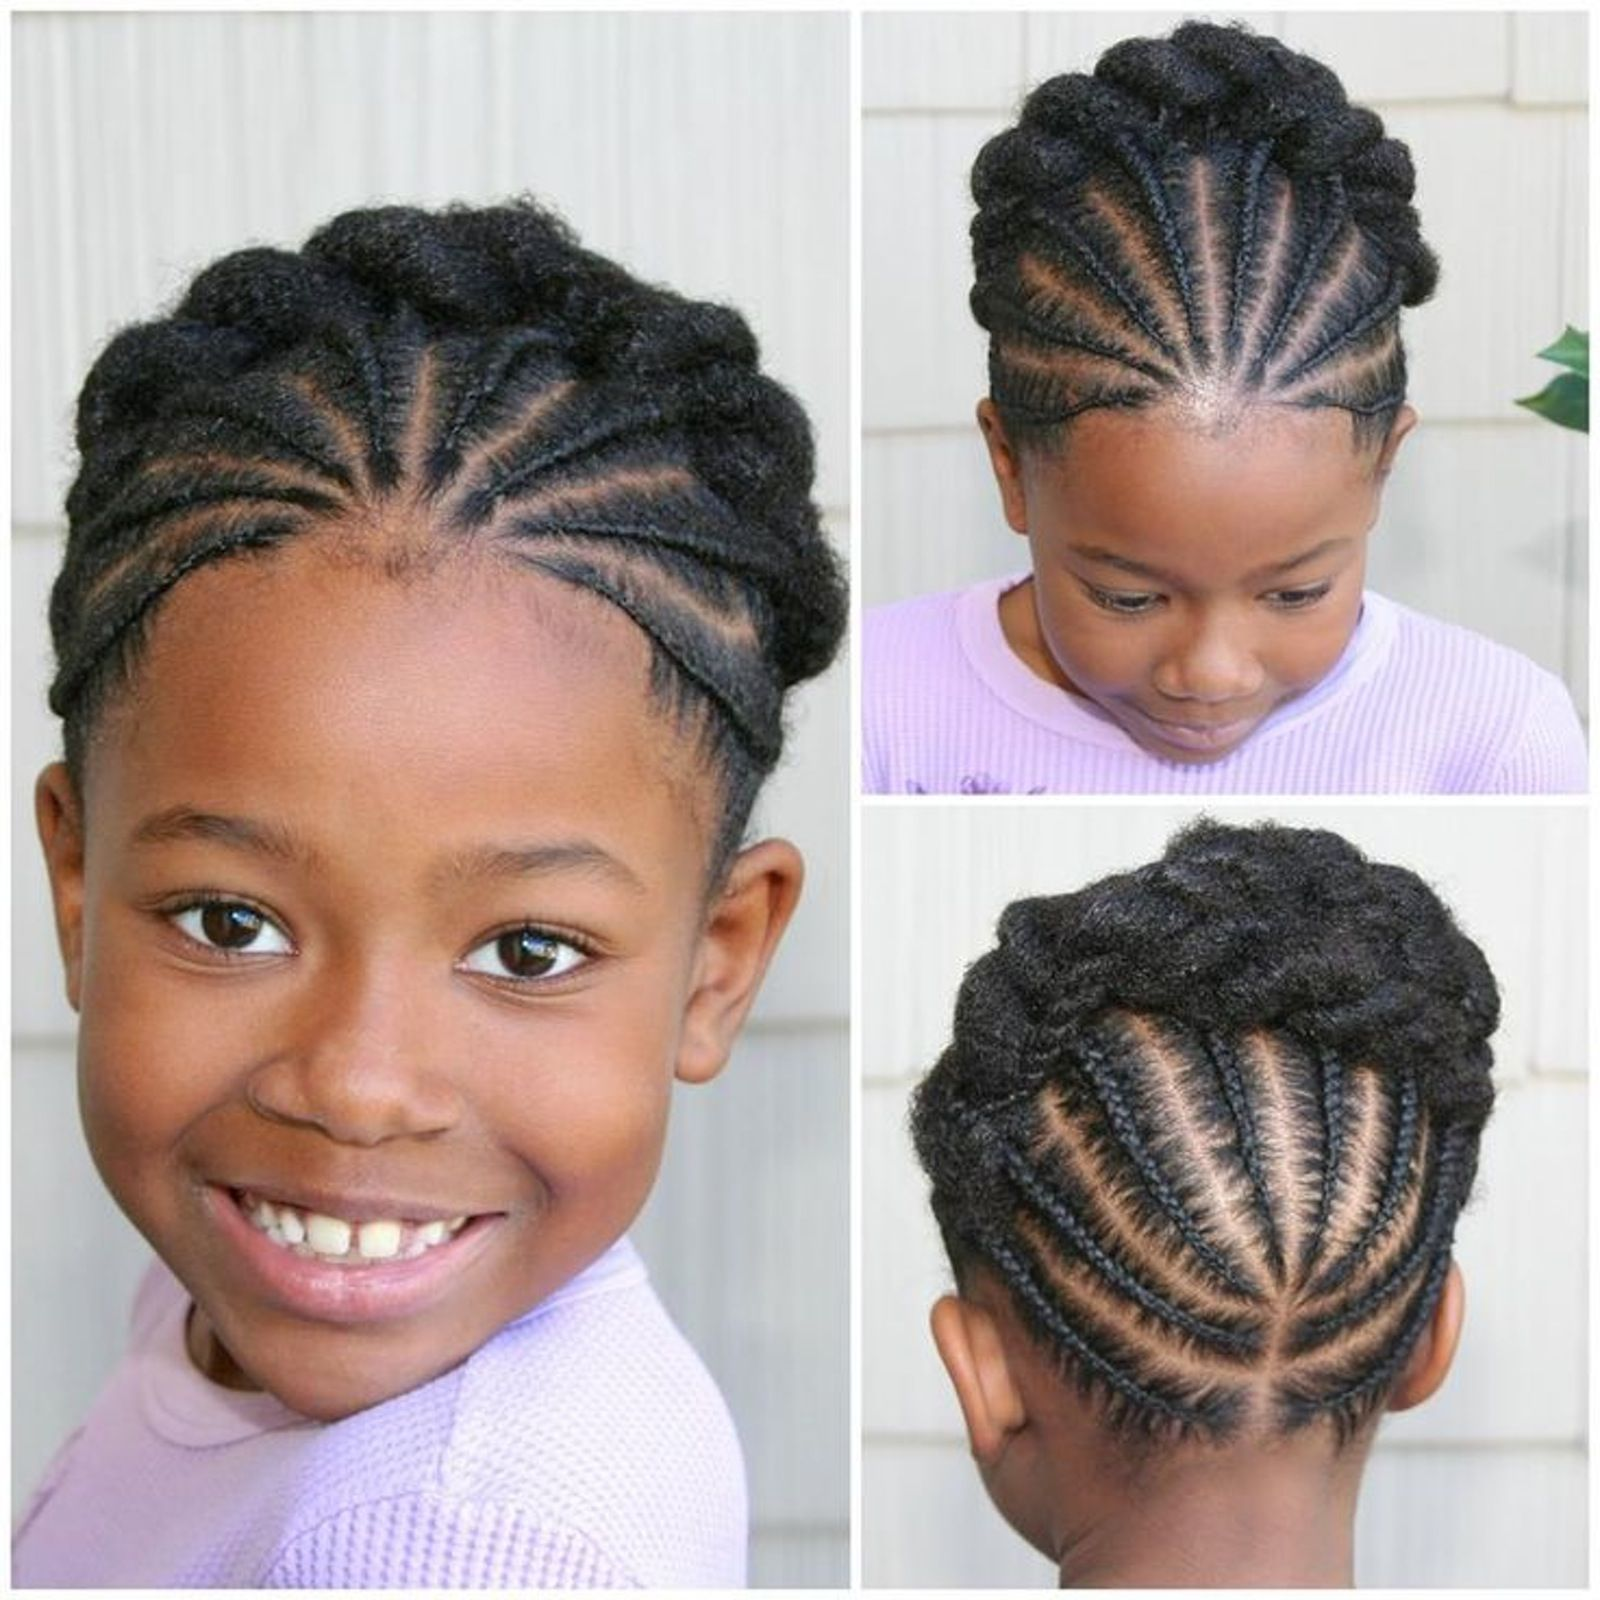 Coiffures 25 Idees De Tresses Pour Petite Fille Parents Fr Natural Hairstyles For Kids Hair Styles Natural Hair Styles